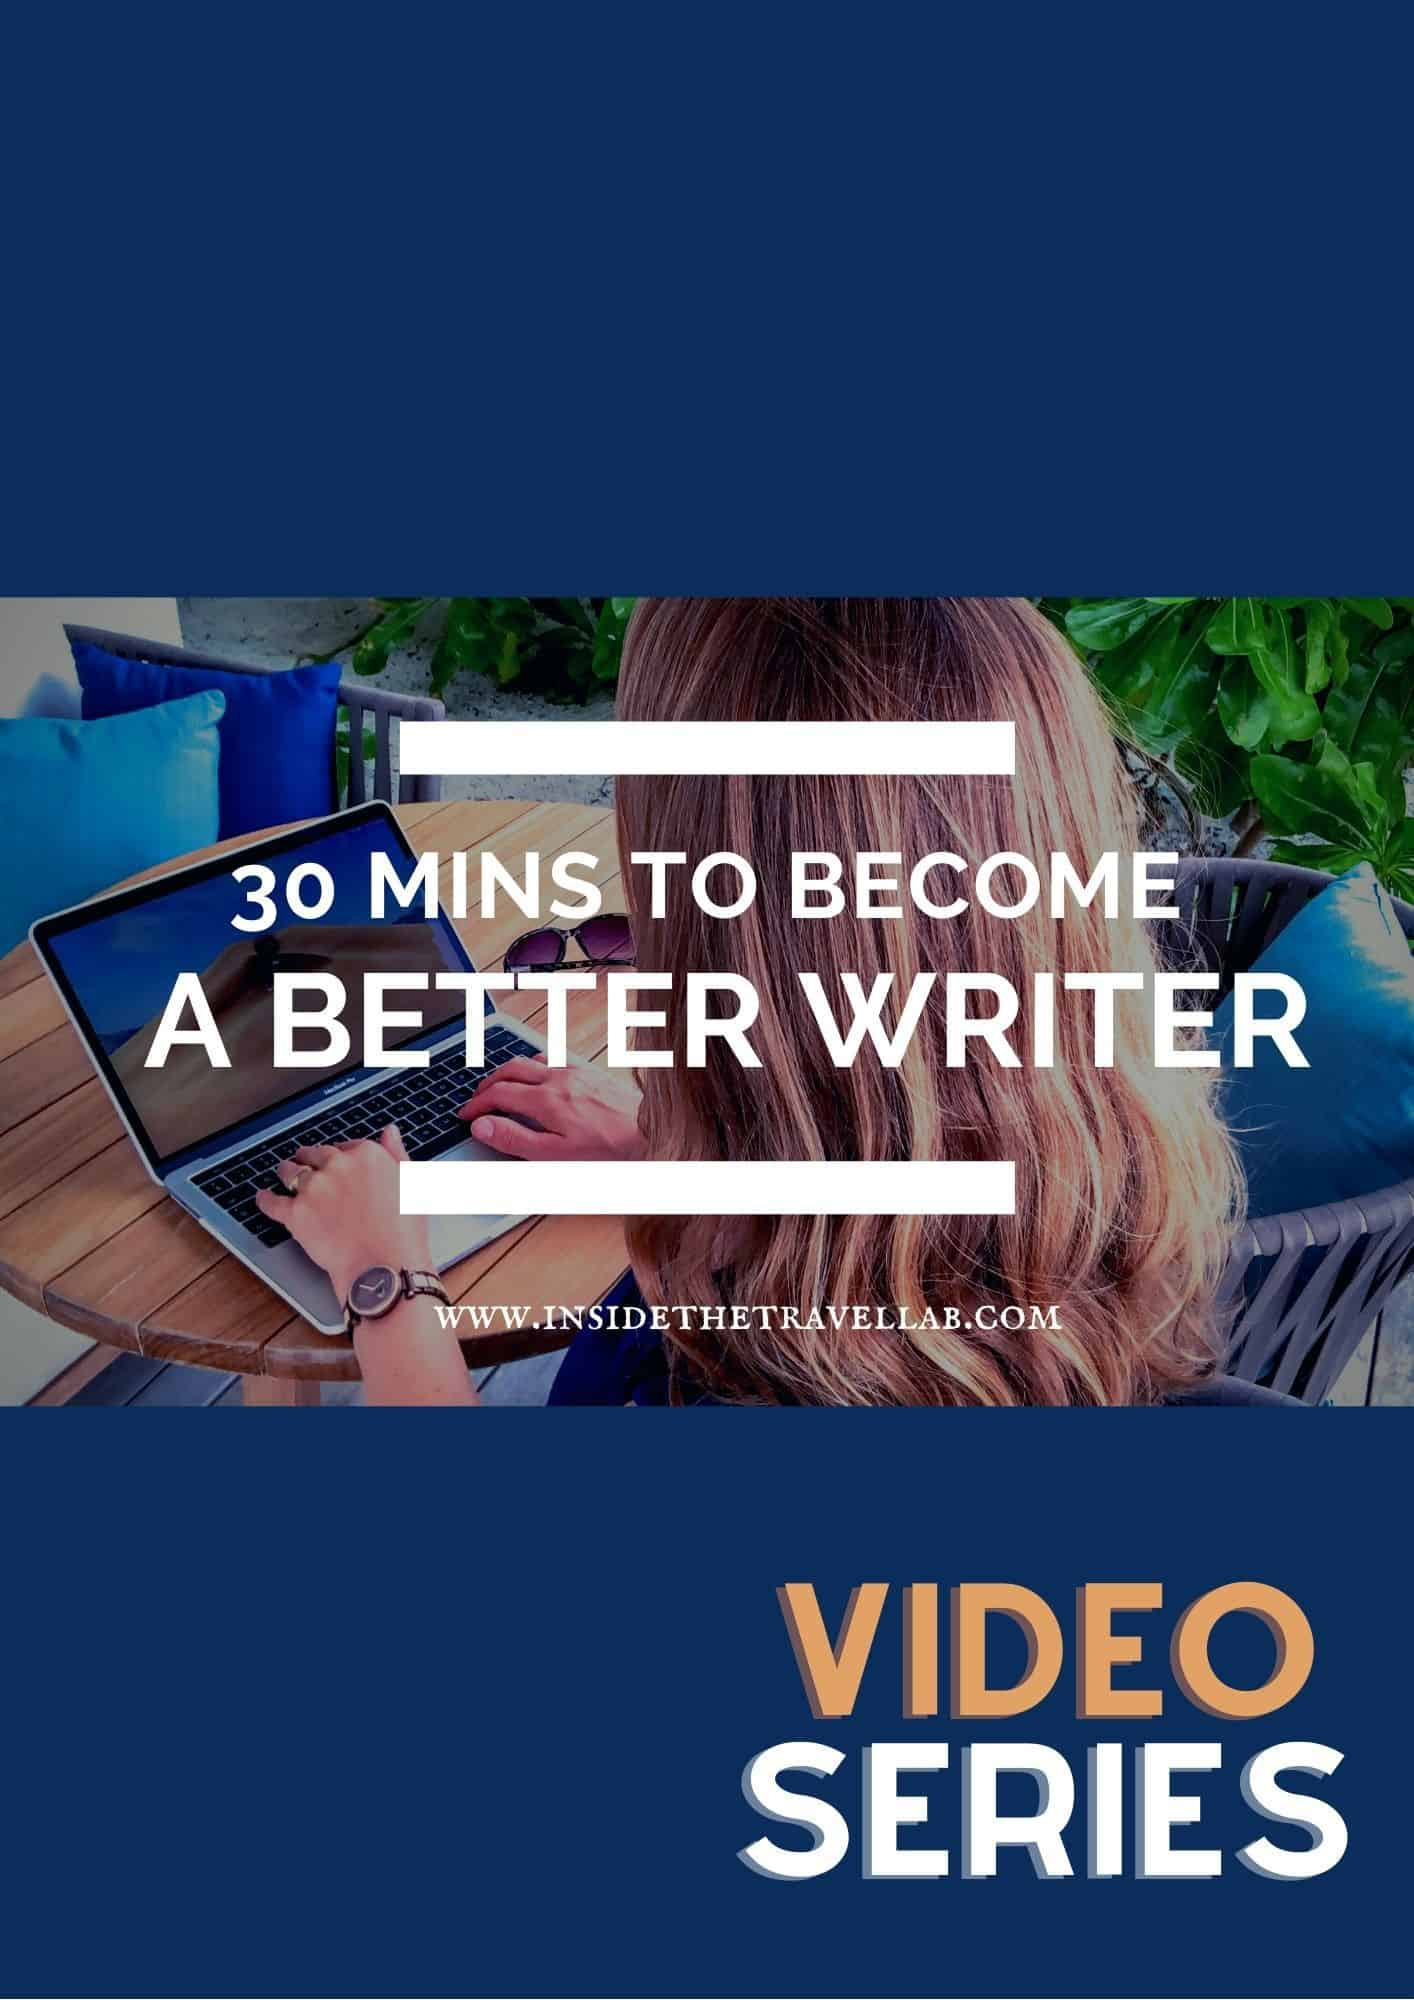 30 Minutes to become a better writer video series